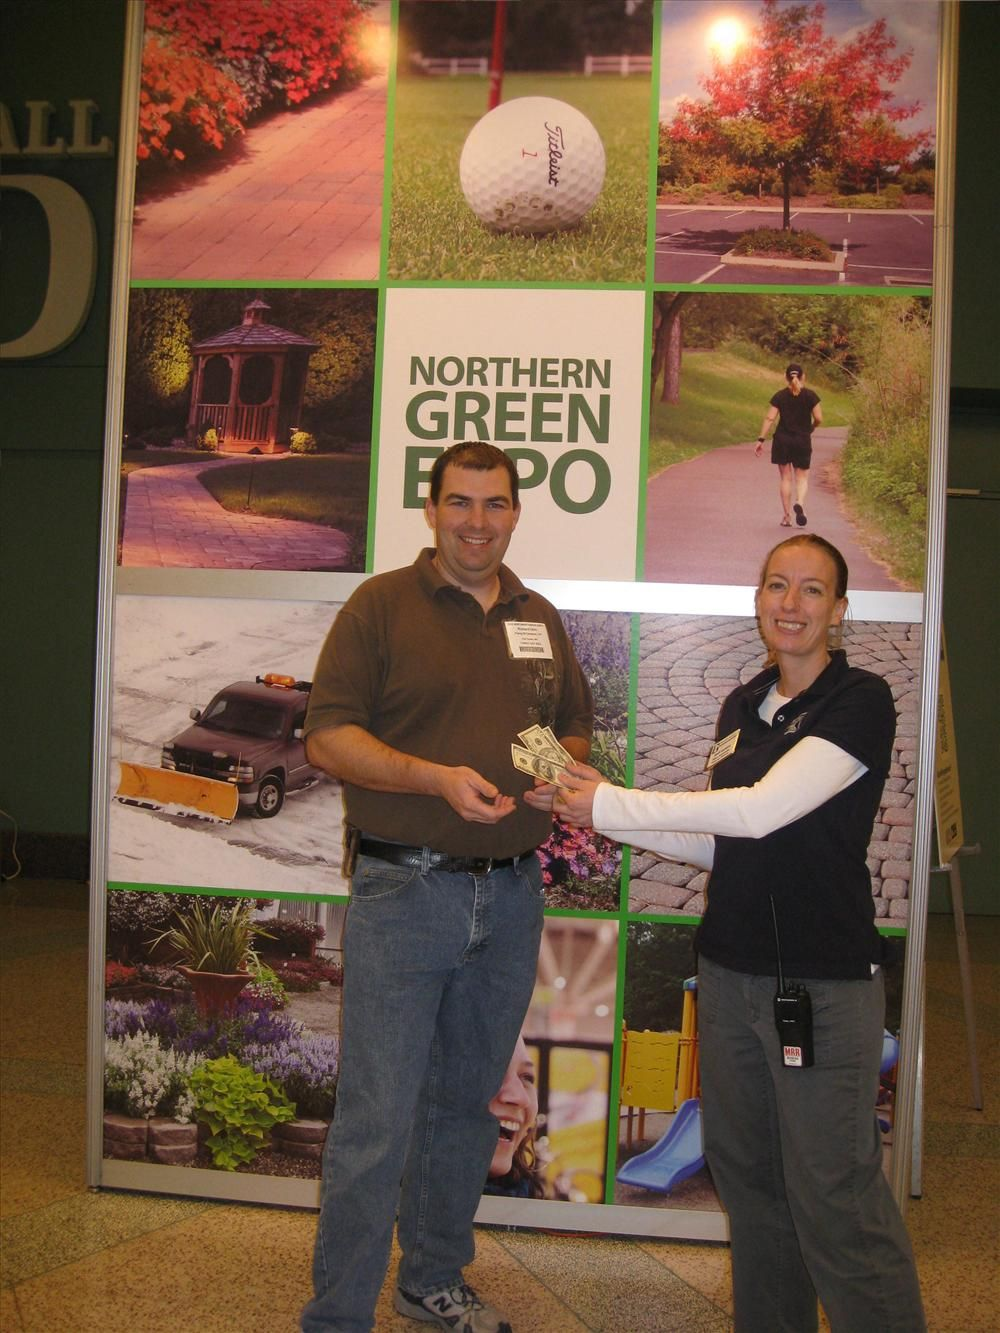 Richard Ohm of Flying W Gardens, Park Rapids, Minn., accepts a grand prize of $250  from Jordi Larson of the Northern Green Expo.